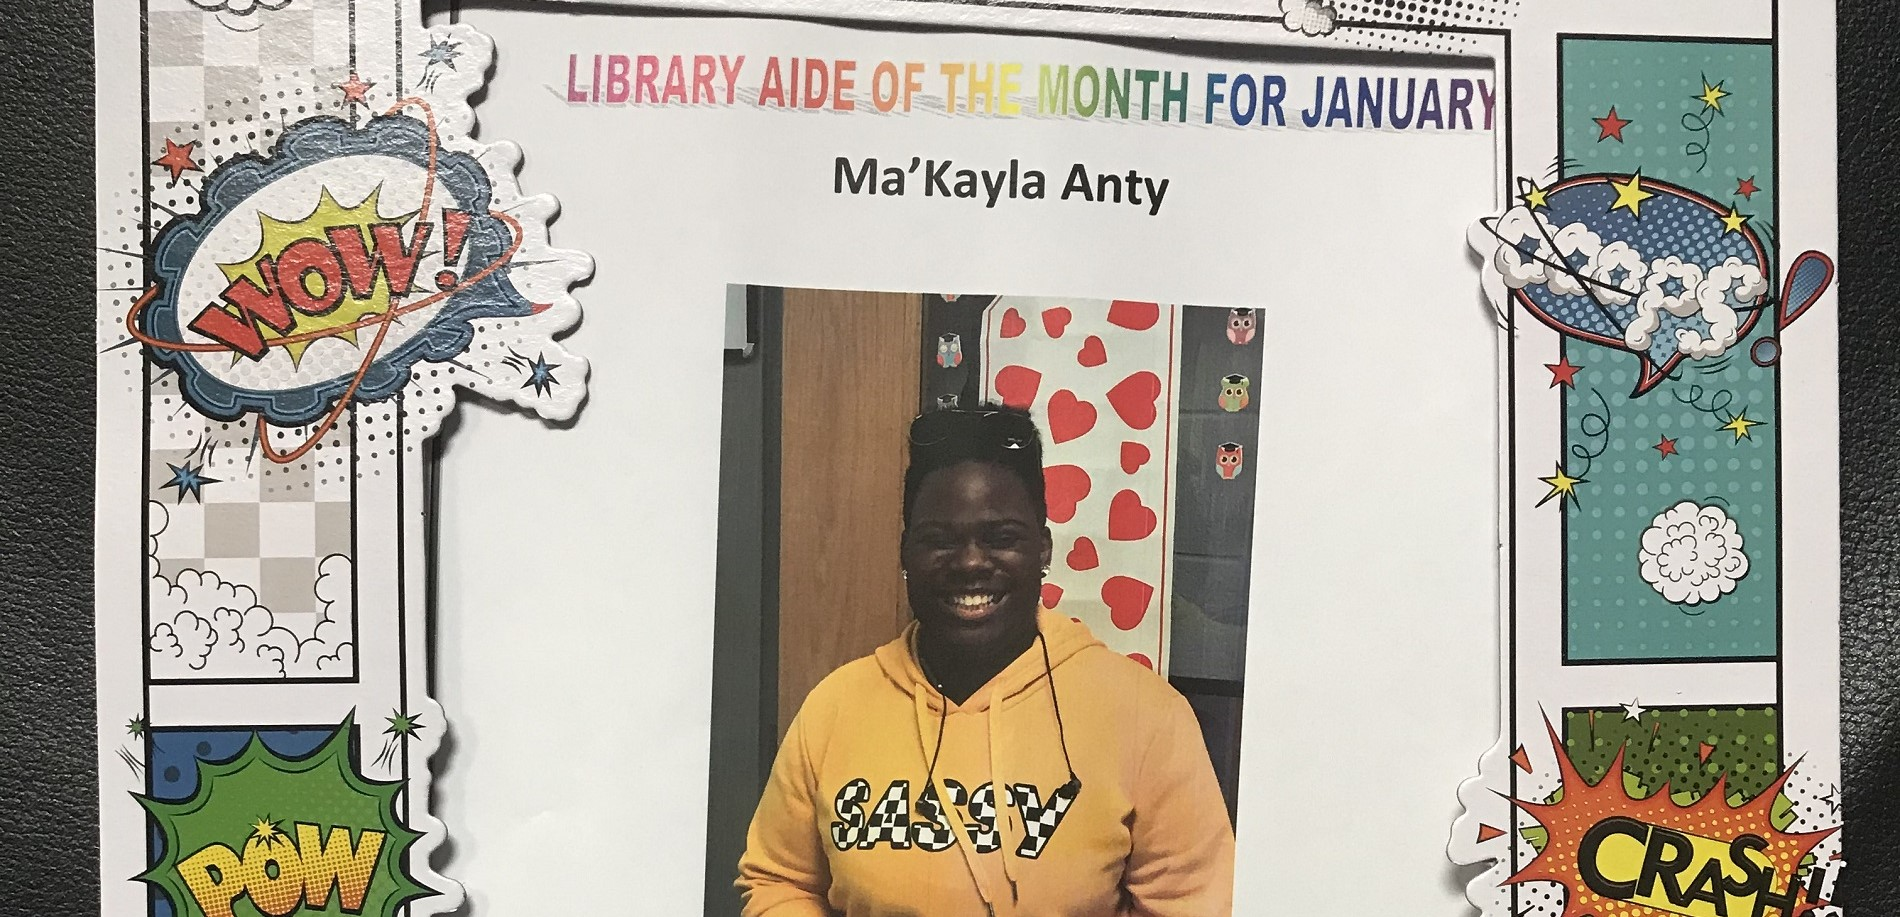 Congratulations to our hard-working library aide!